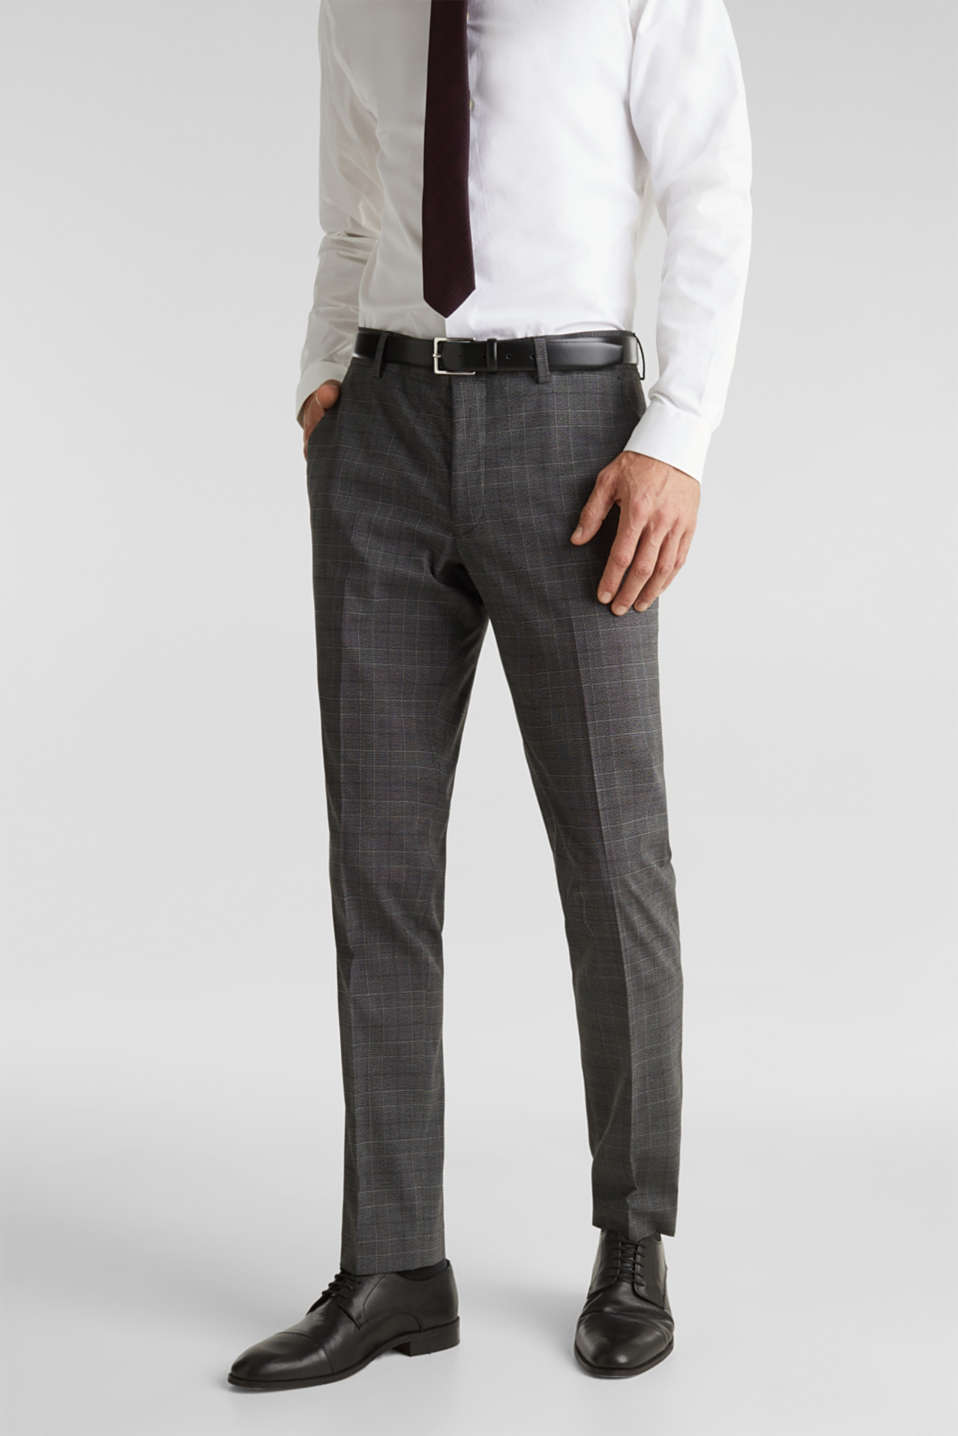 GLENCHECK mix + match: Trousers with Prince of Wales check pattern, DARK GREY 3, detail image number 0